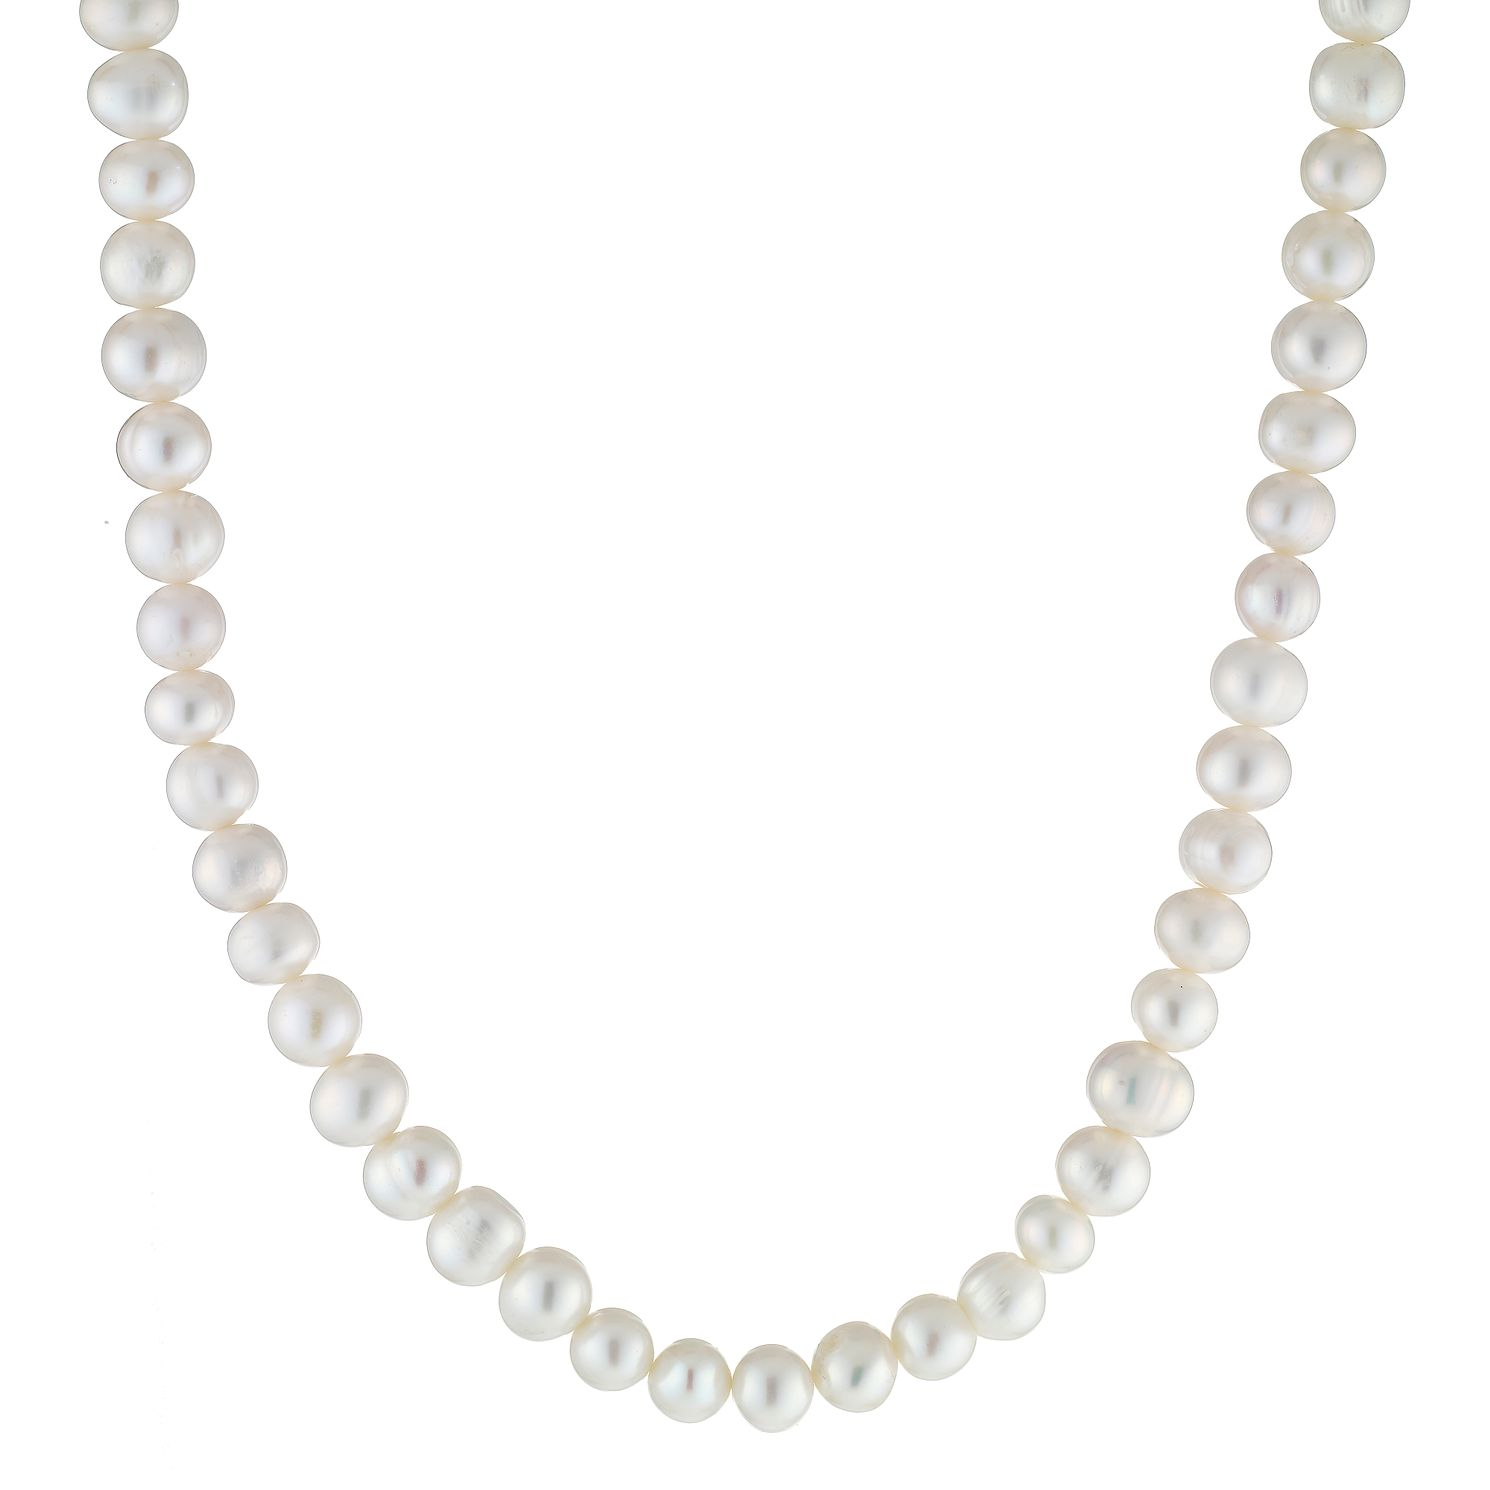 pendants with ed gold fmt sea tiffany hei necklace in south pearl necklaces constrain wid pendant jewelry diamonds fit id